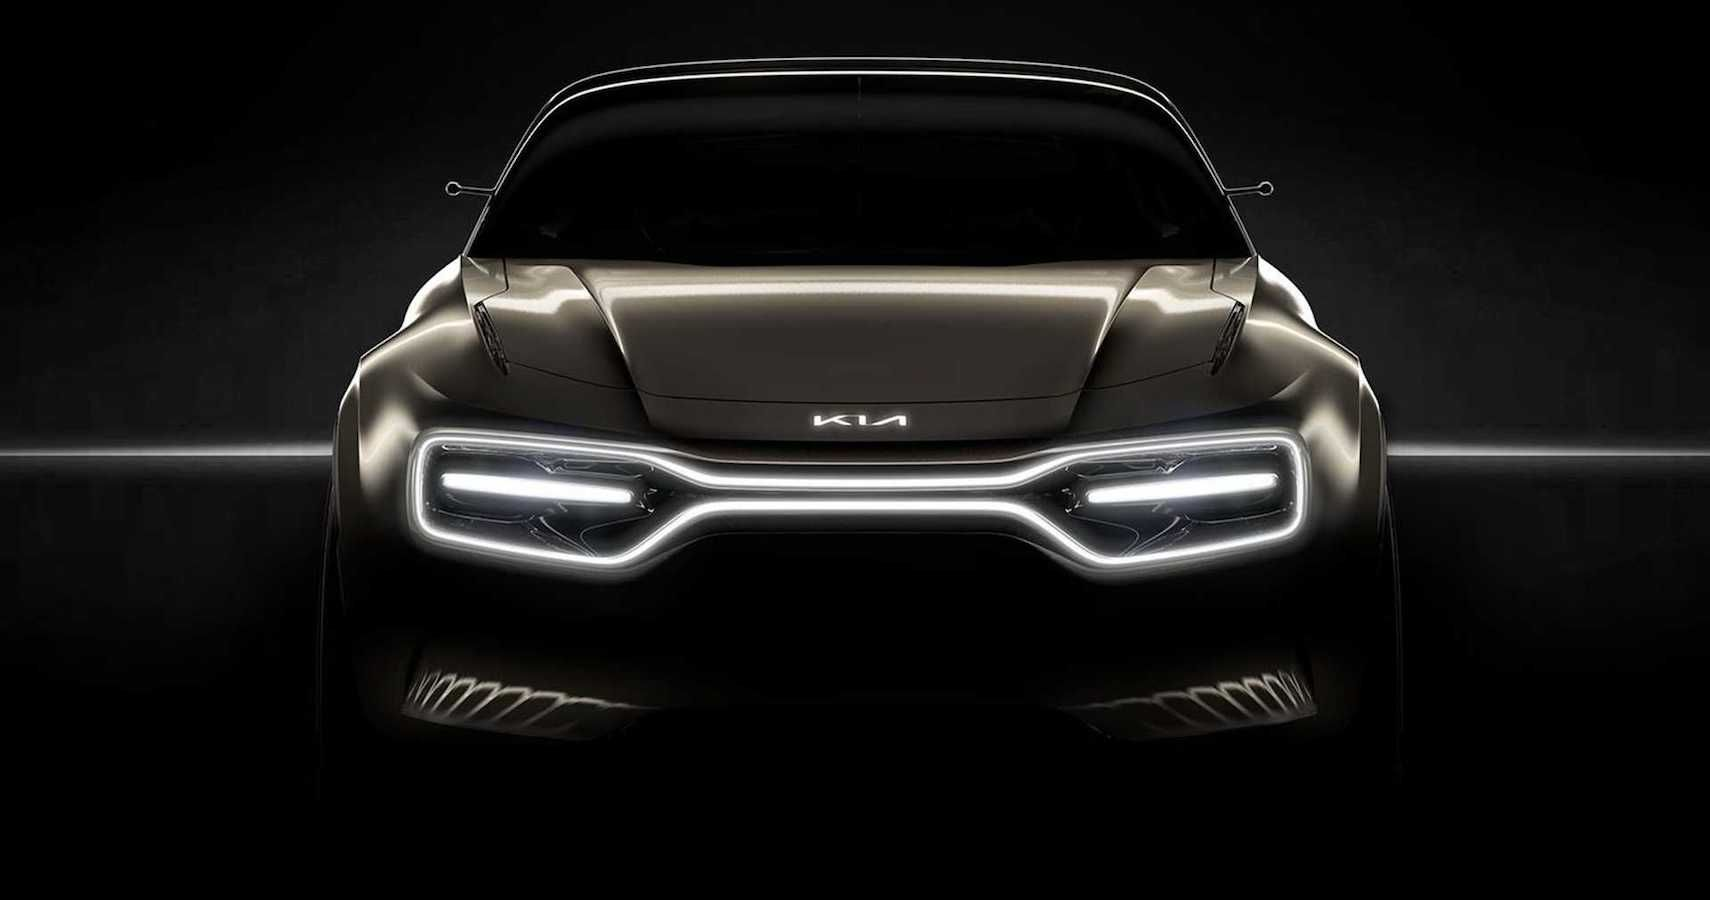 Watch Kia Reveal Its New Logo During Record-Setting Firework Display